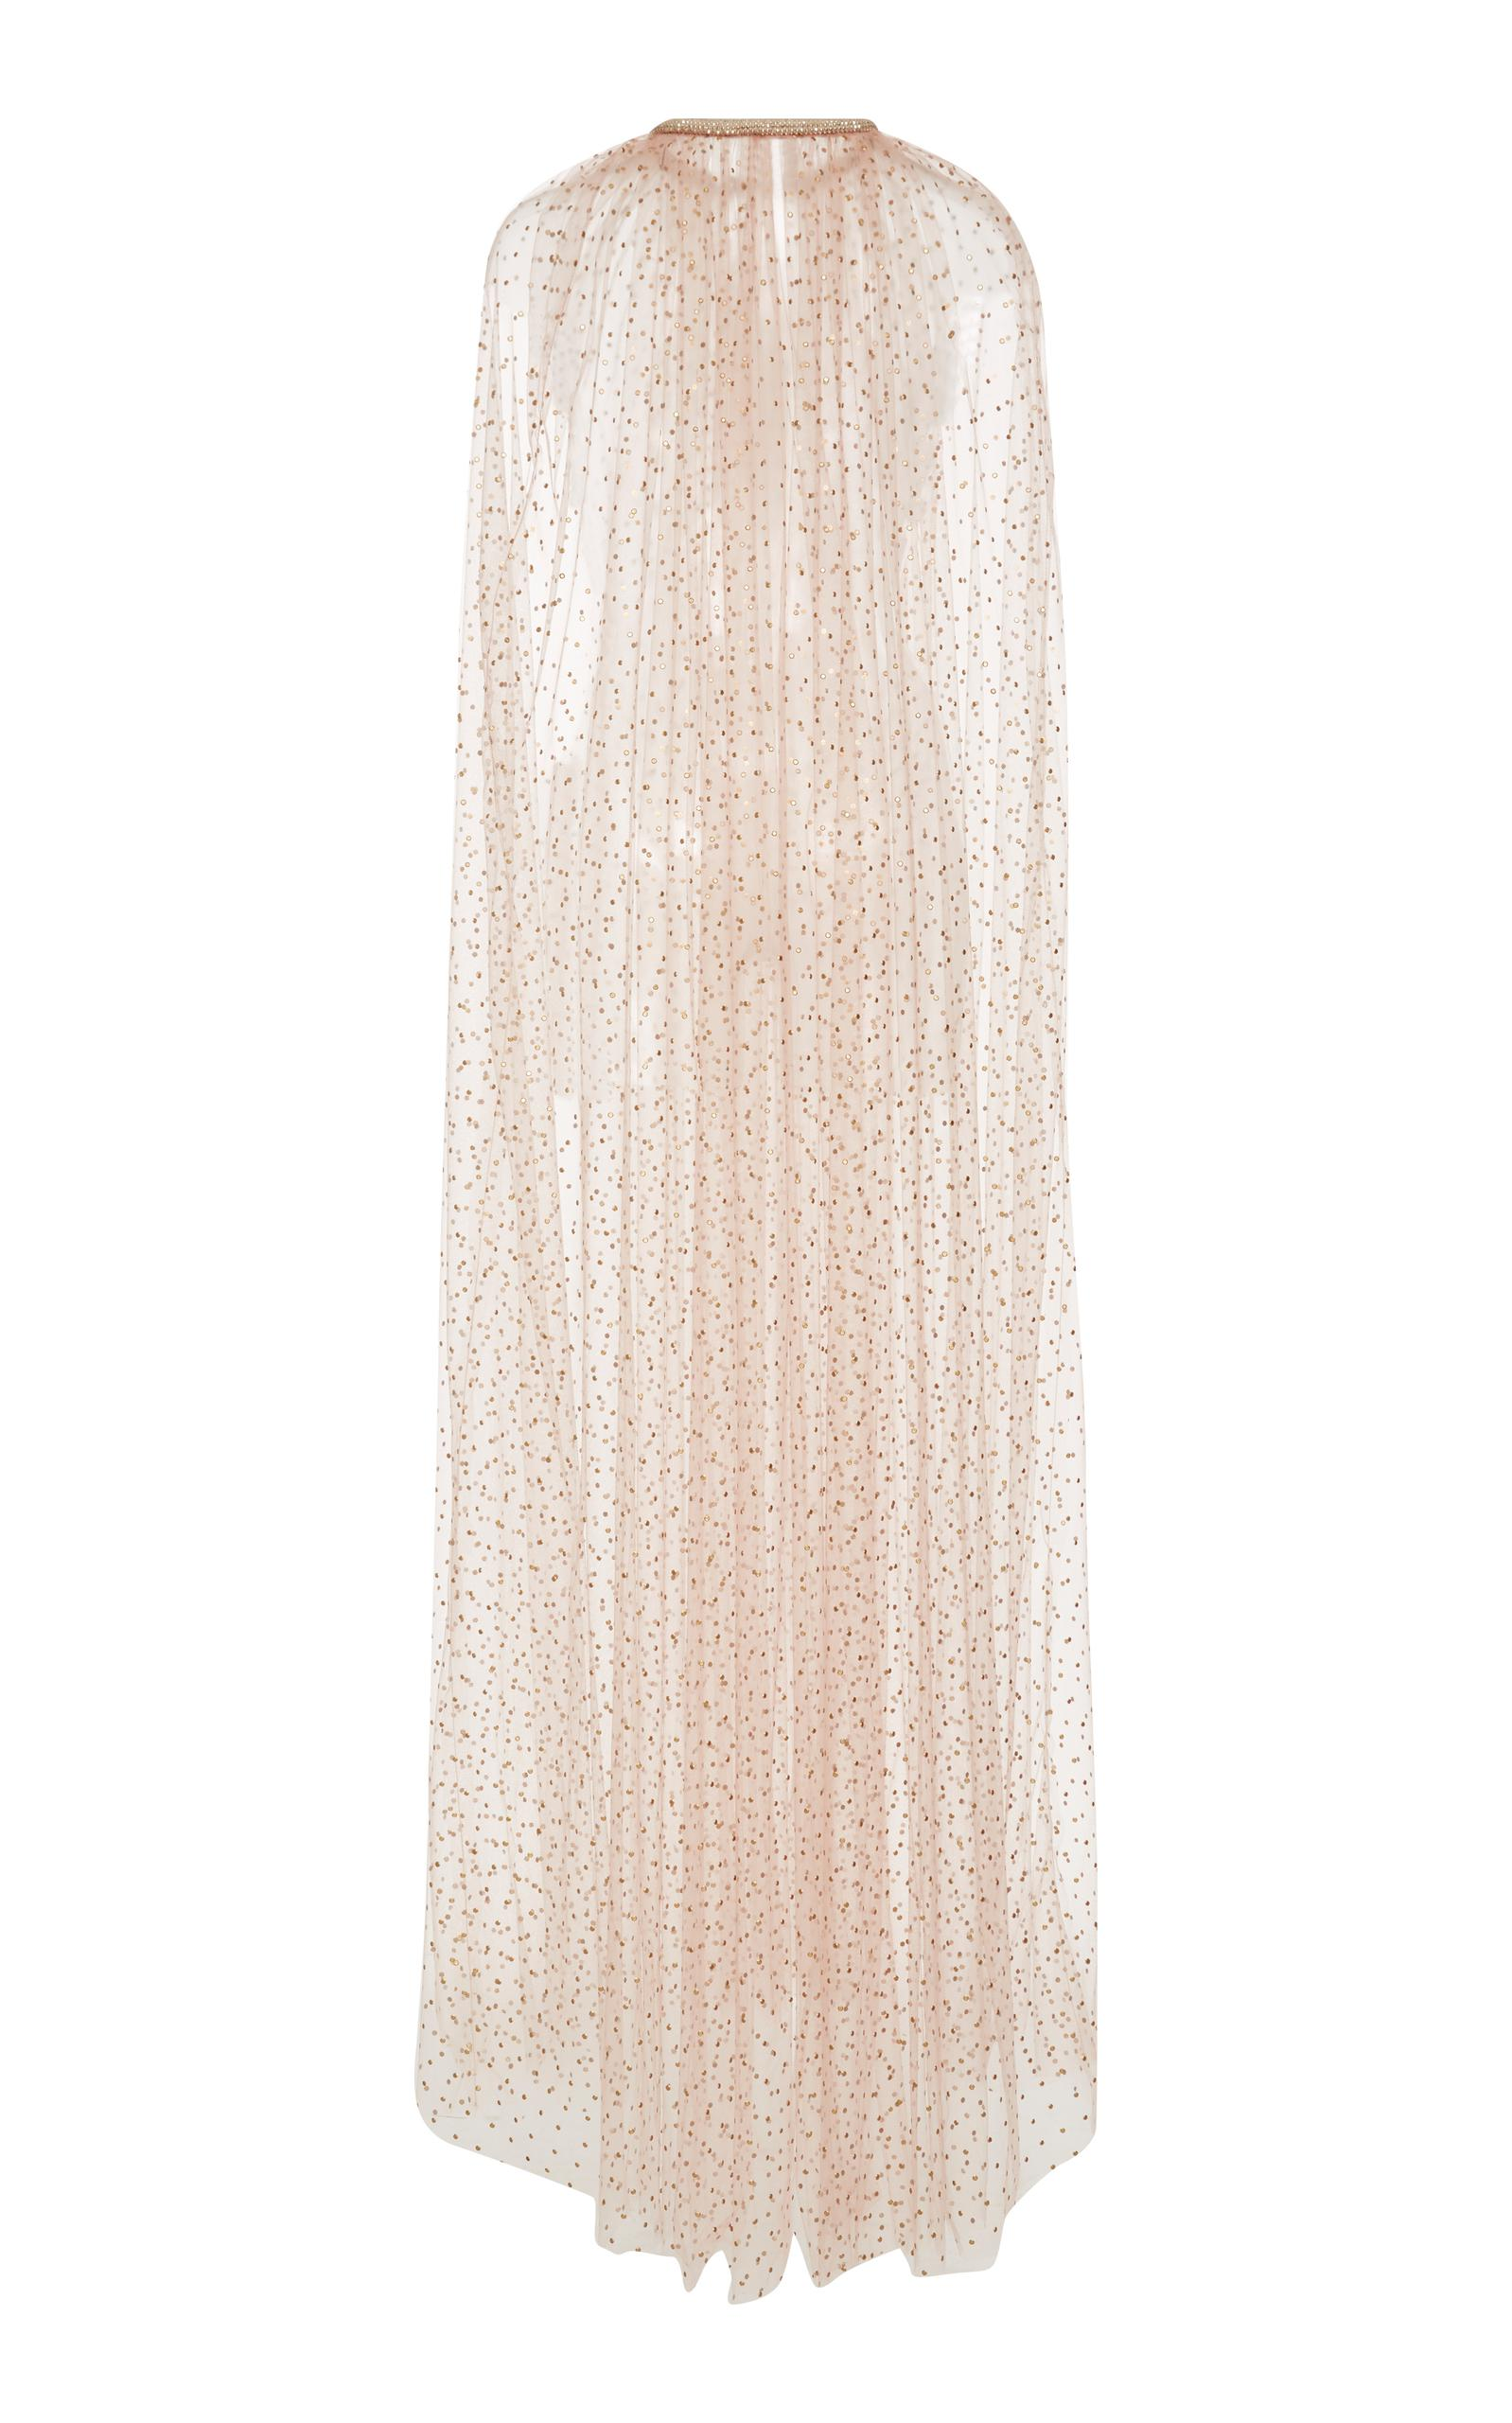 Monique Lhuillier Sheer Tulle Embroidered Cape in Gold (Metallic)